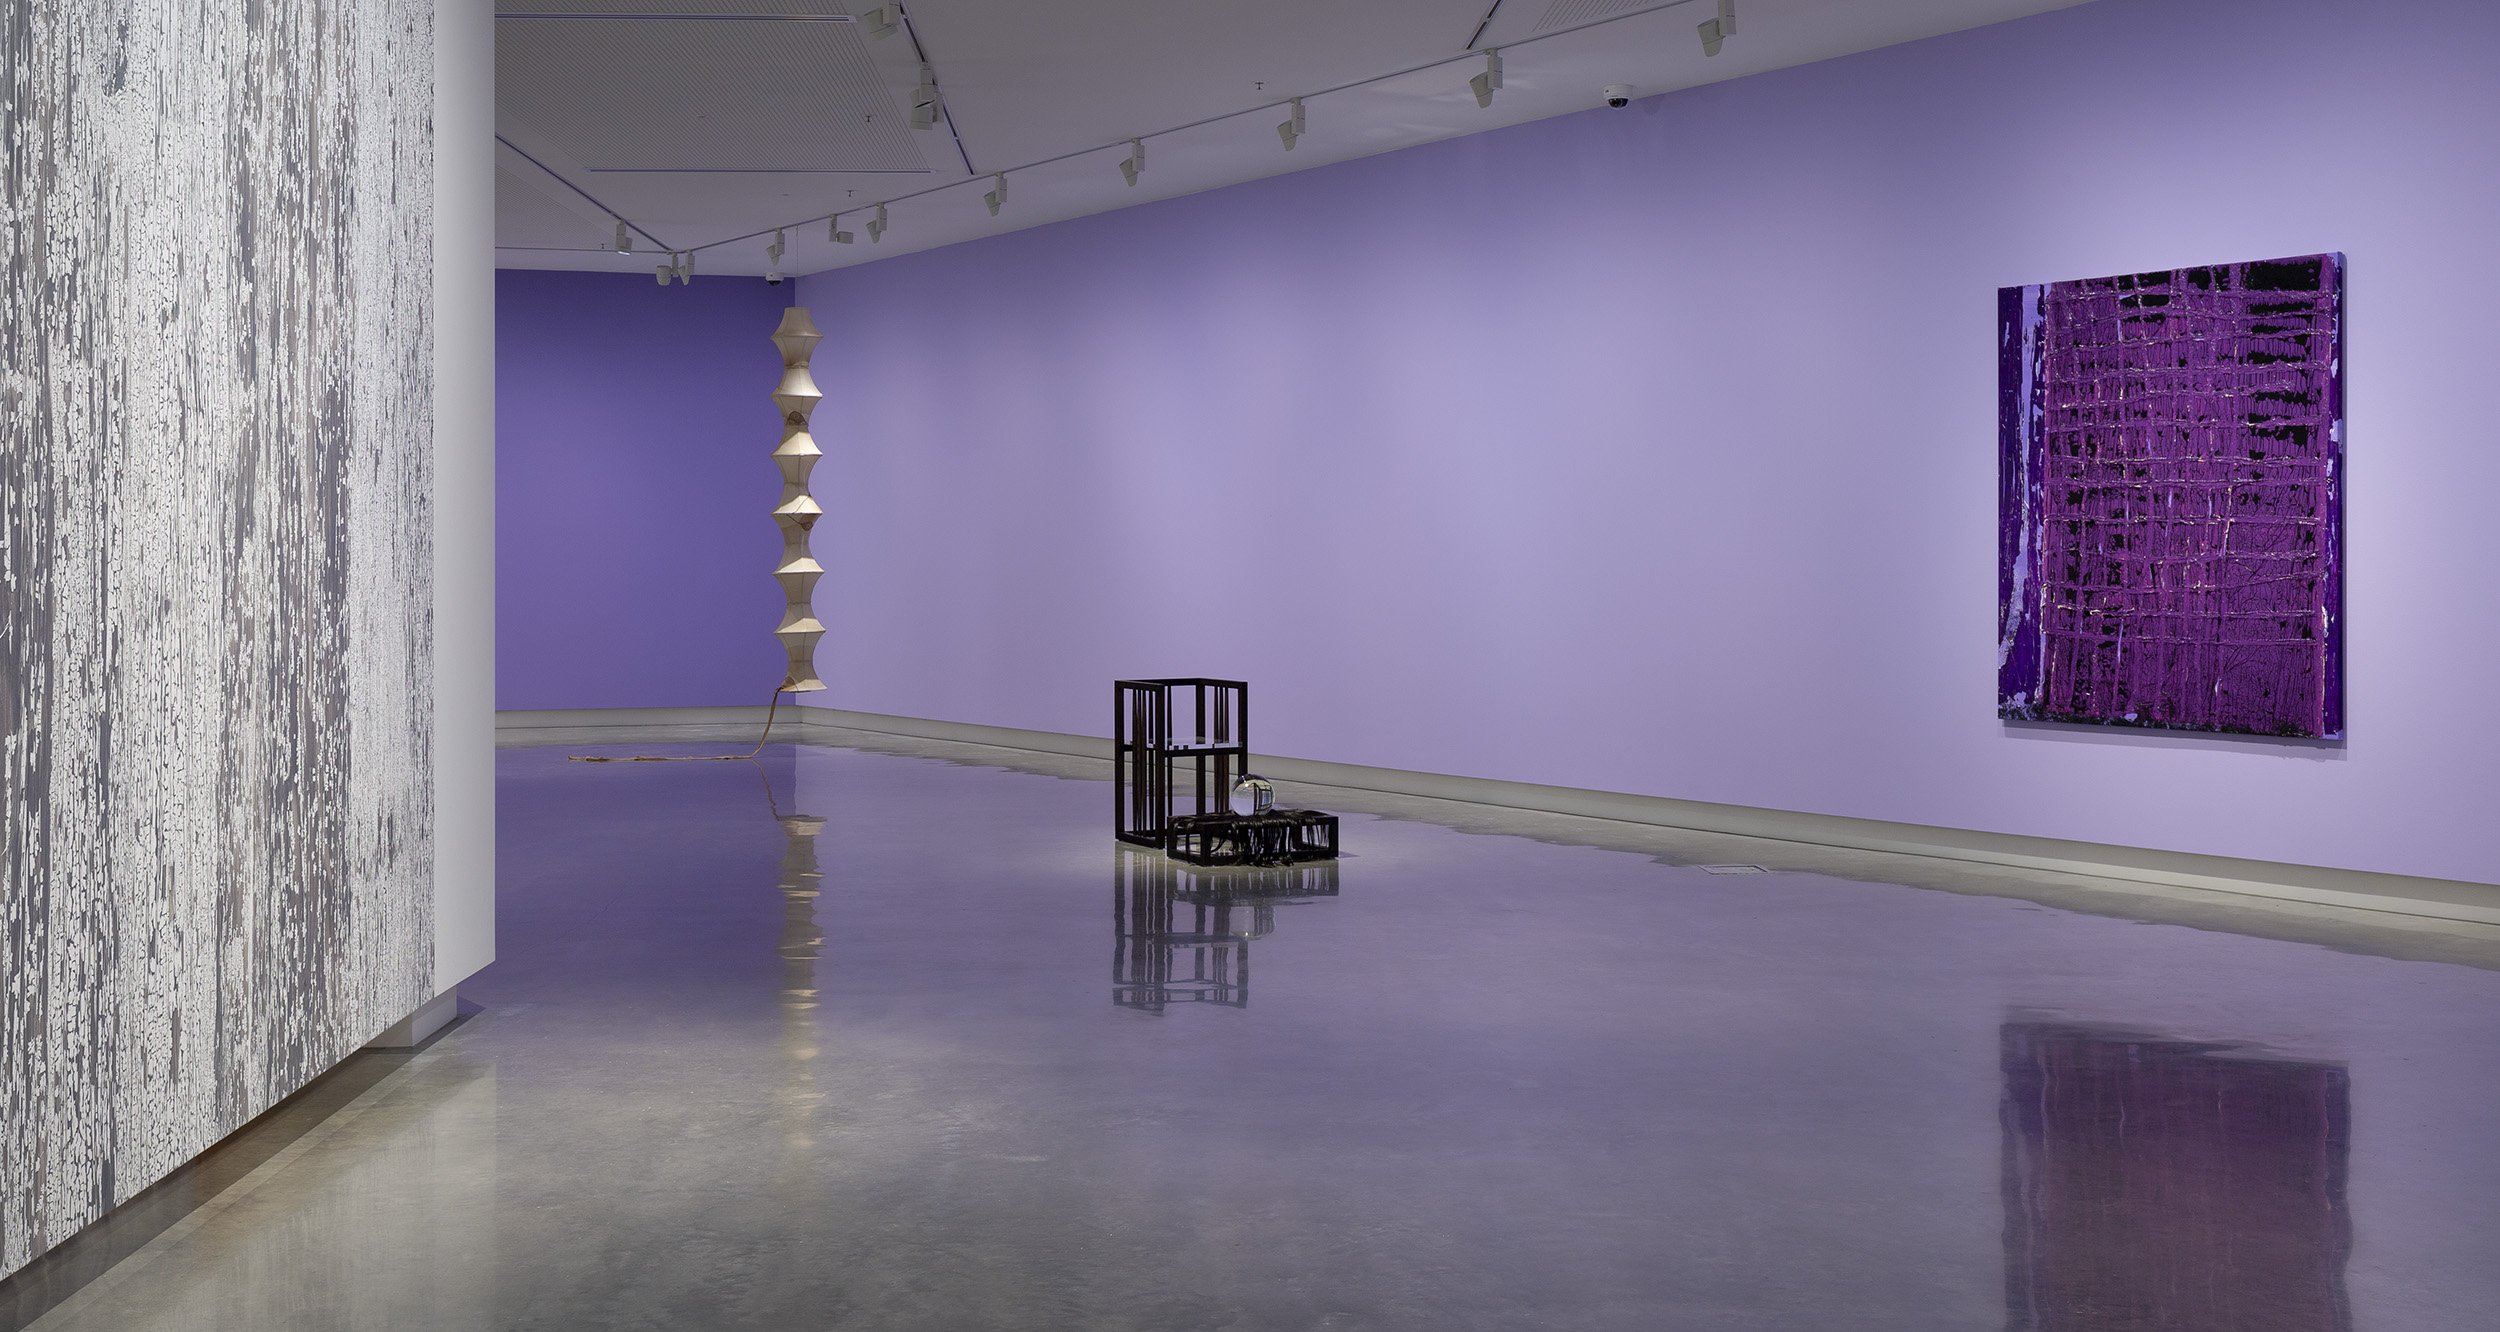 Image shows a section of the gallery with purple walls. A black chair-like installation sits on the floor, a purple painting on the wall and a hanging artwork in the background.